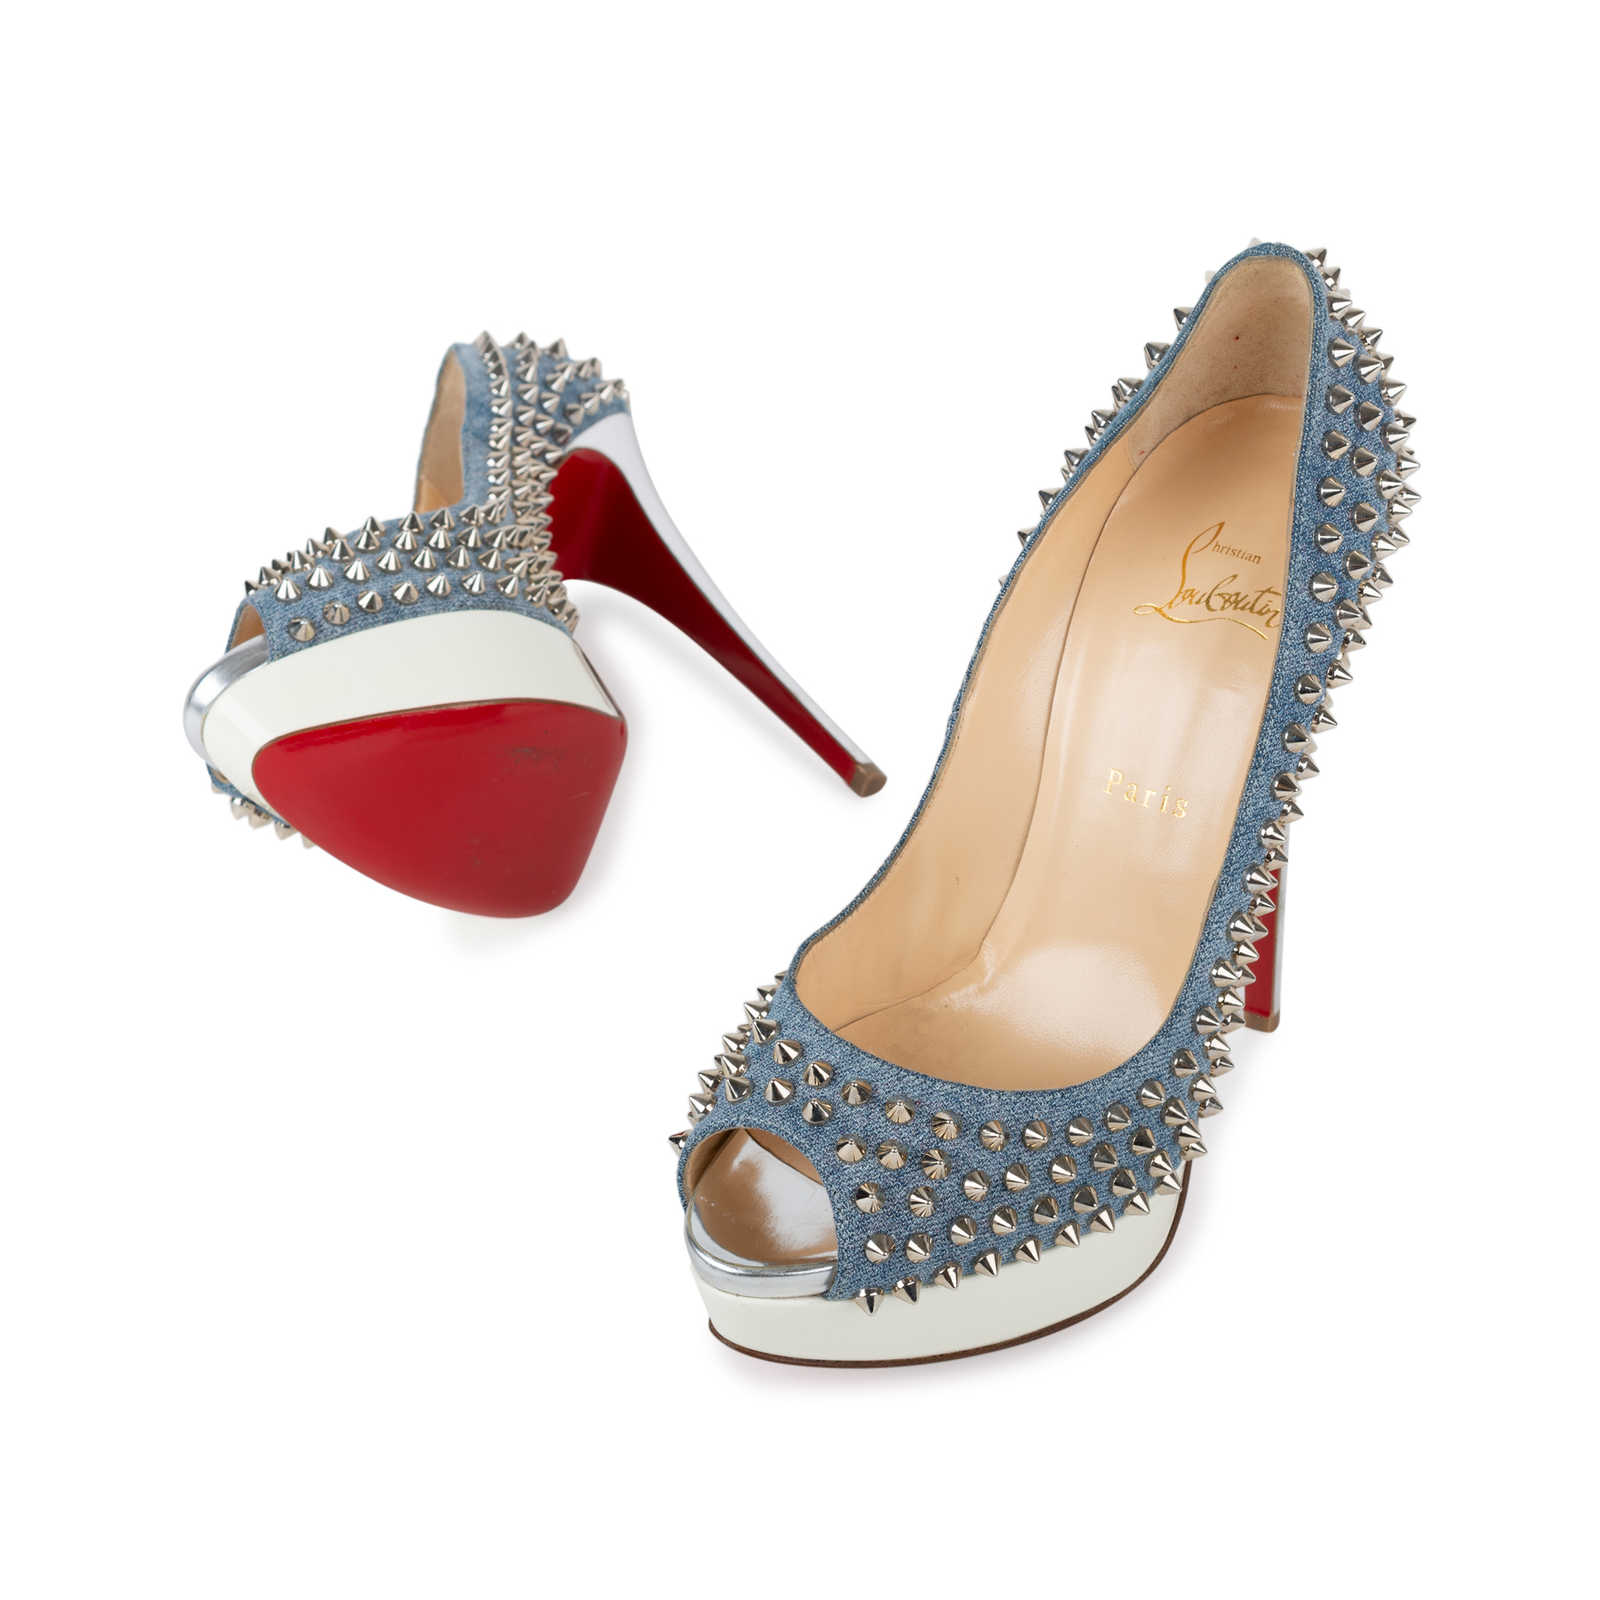 ed356d834272 ... Authentic Second Hand Christian Louboutin Lady Peep Denim Spiked Pumps  (PSS-569-00018 ...